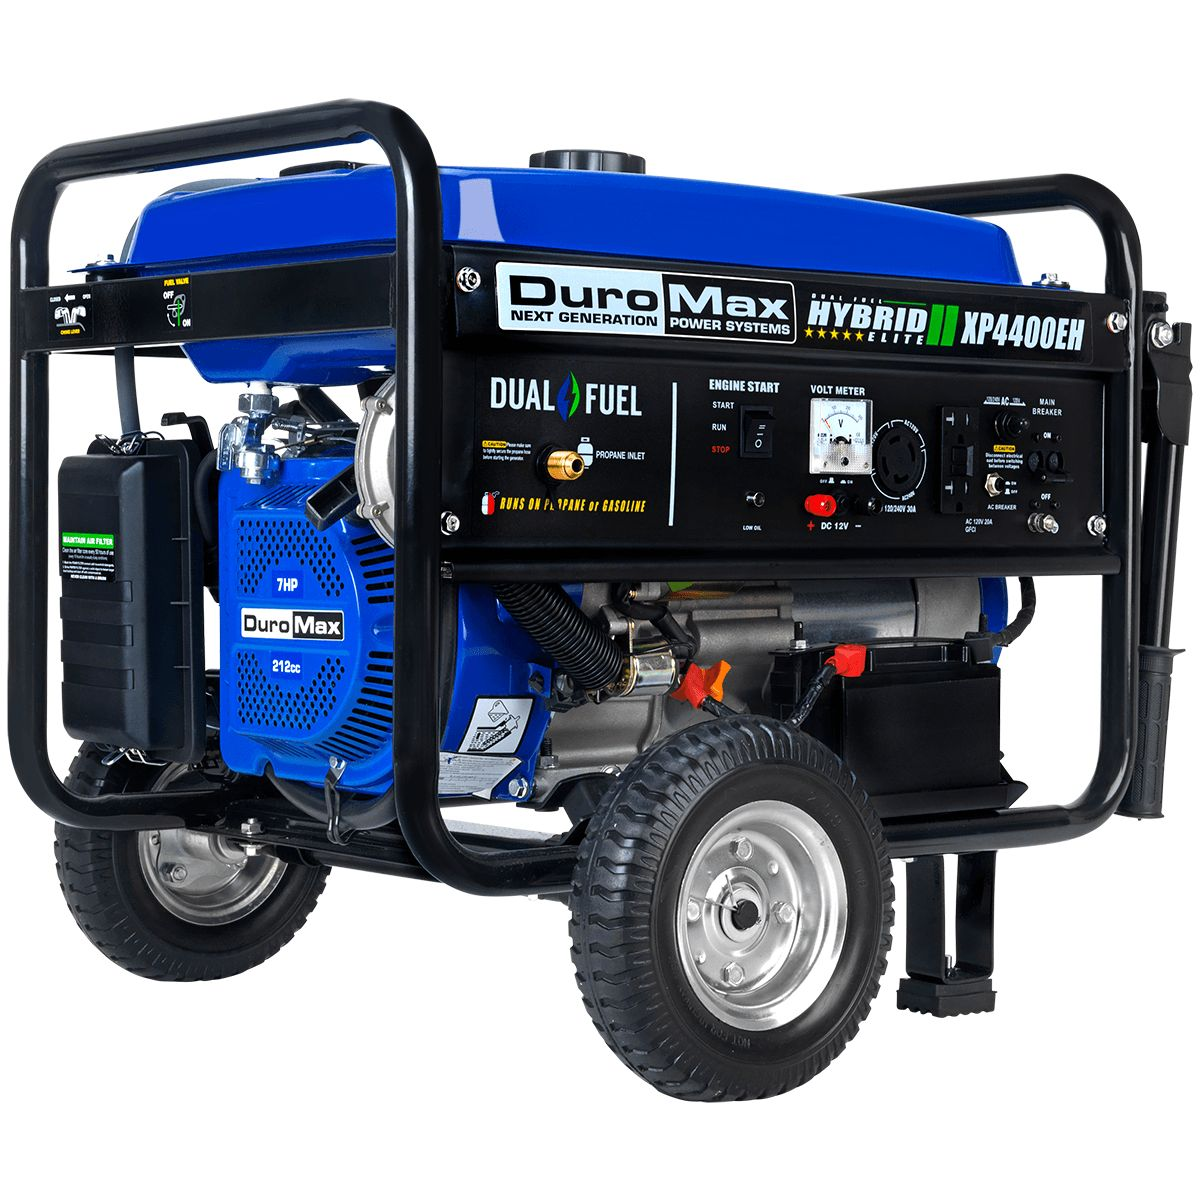 Product Manuals – DuroMax Power Equipment on